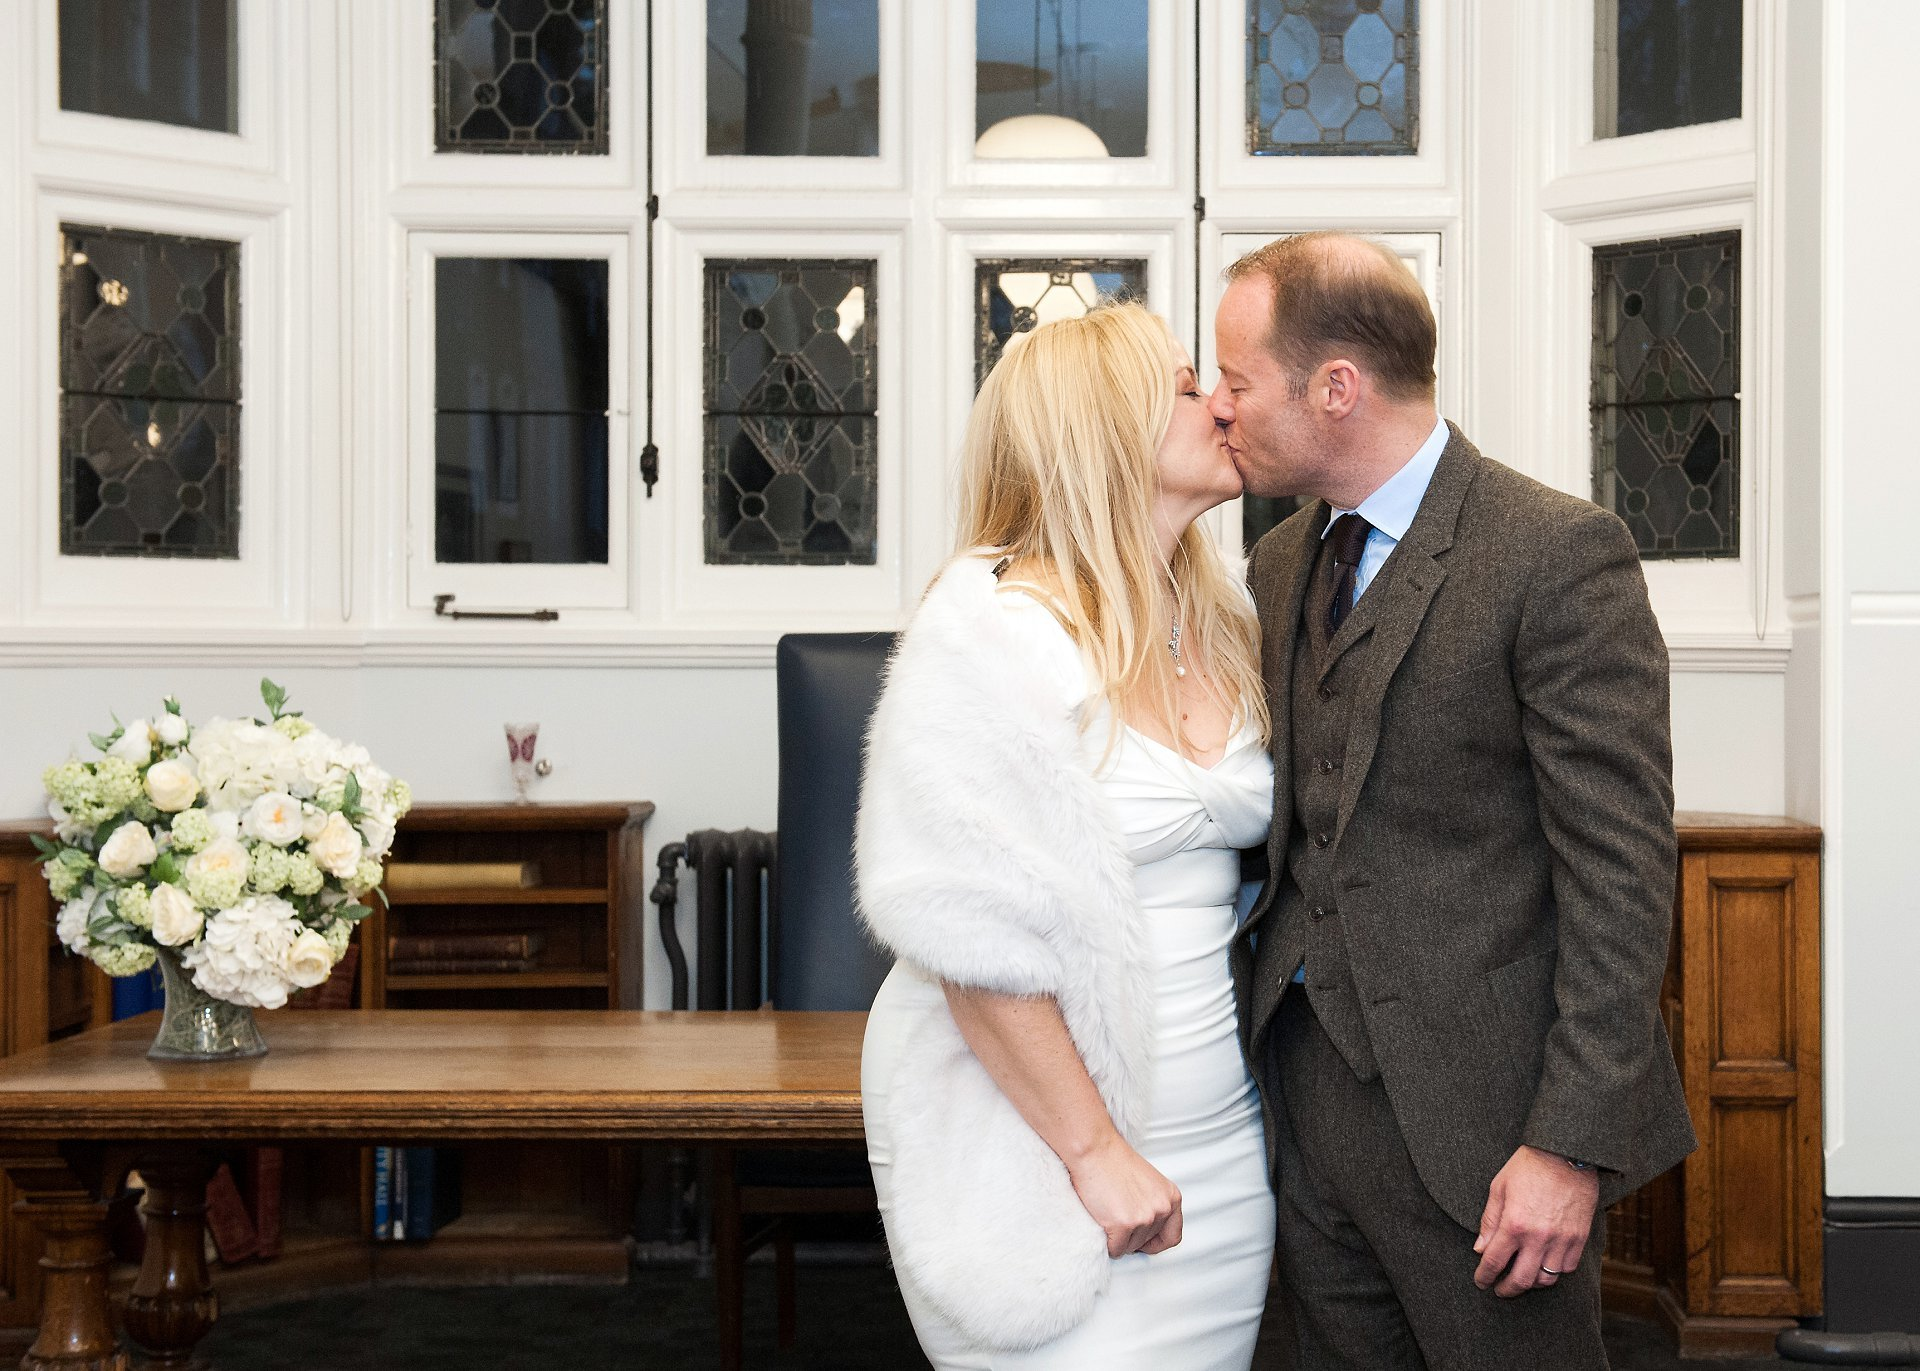 Westminster Register Office Christmas wedding Old Marylebone Town Hall wedding photographer Emma Duggan for hourly coverage of small, intimate wedding celebrations